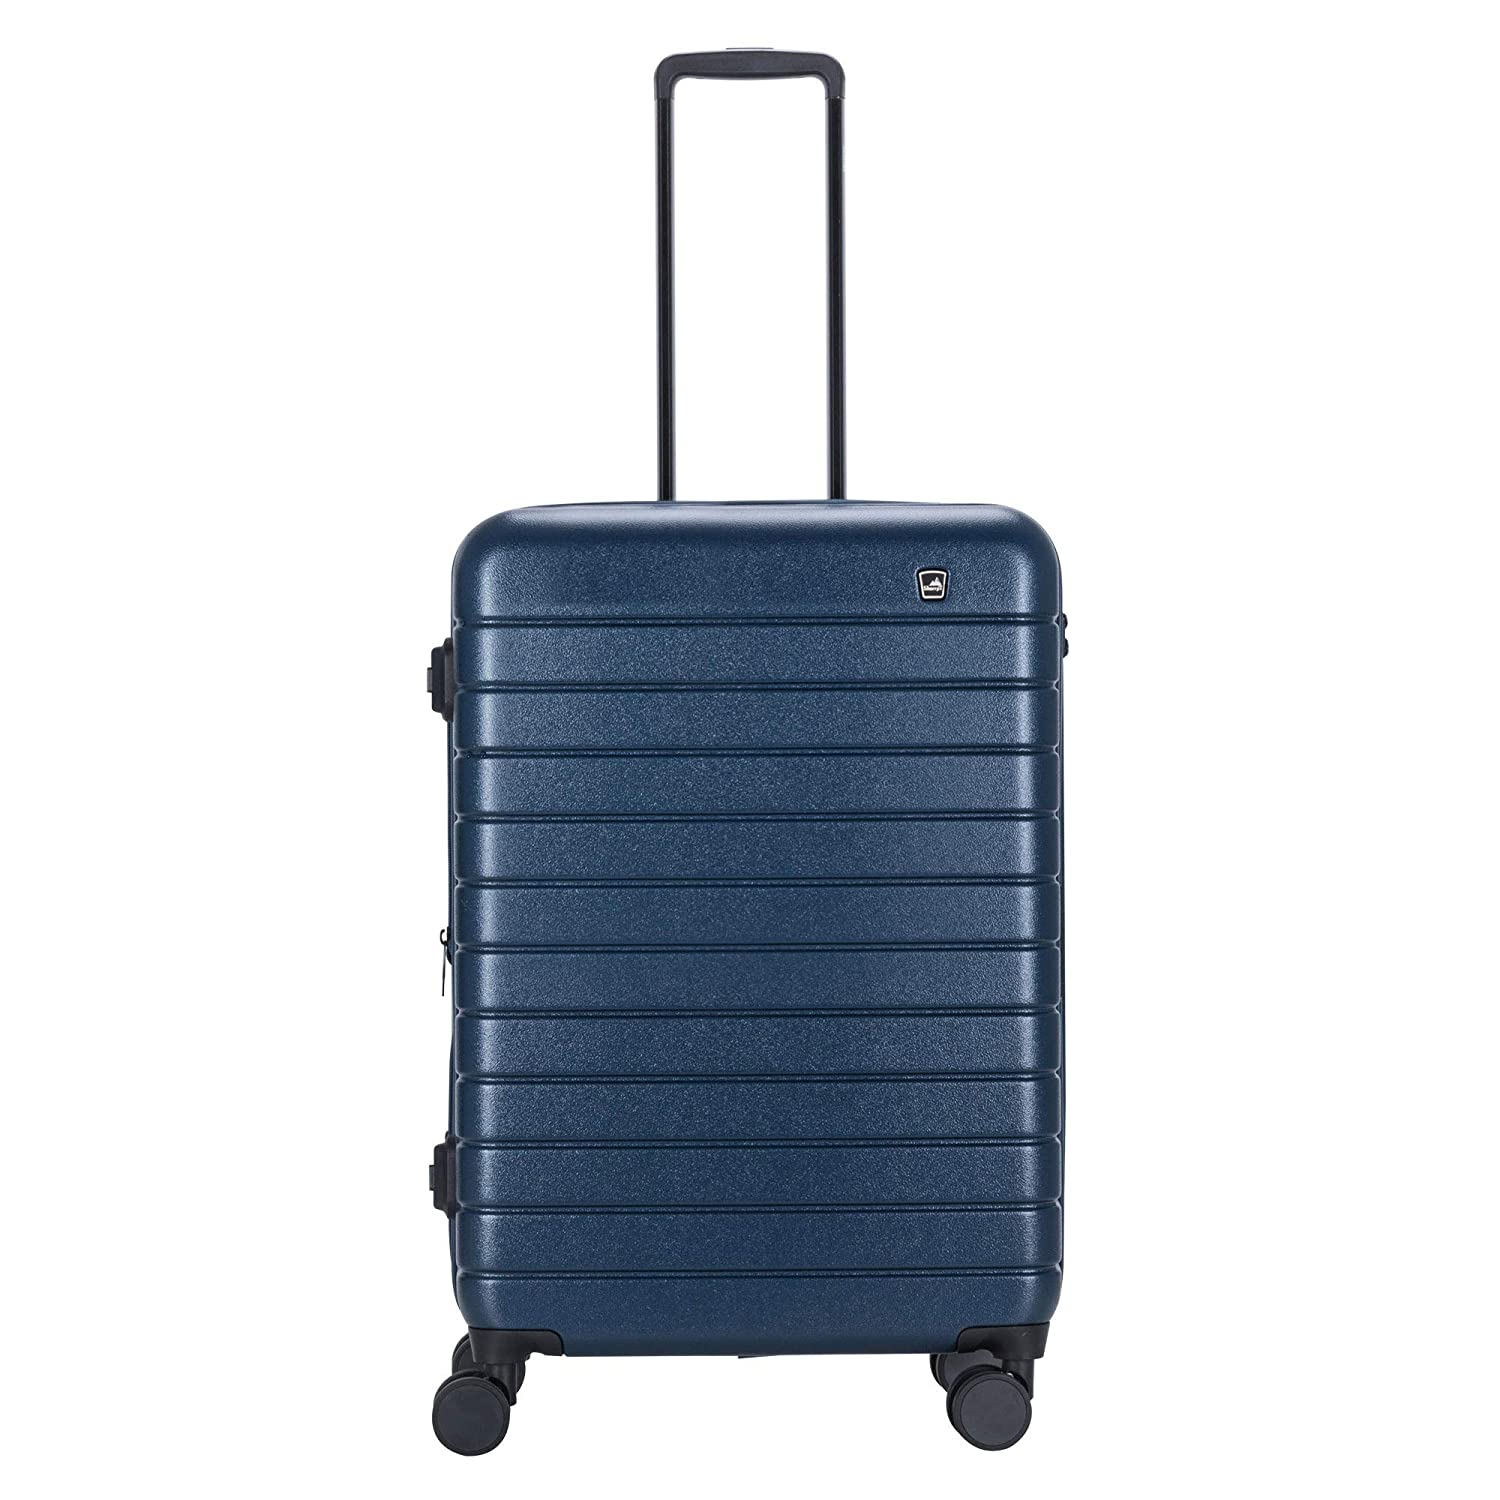 Sherrpa Destiny Luggage Hardside Lightweight Expandable Suitcase Spinner Carry on 20in 25in 29in L 29inch , Navy